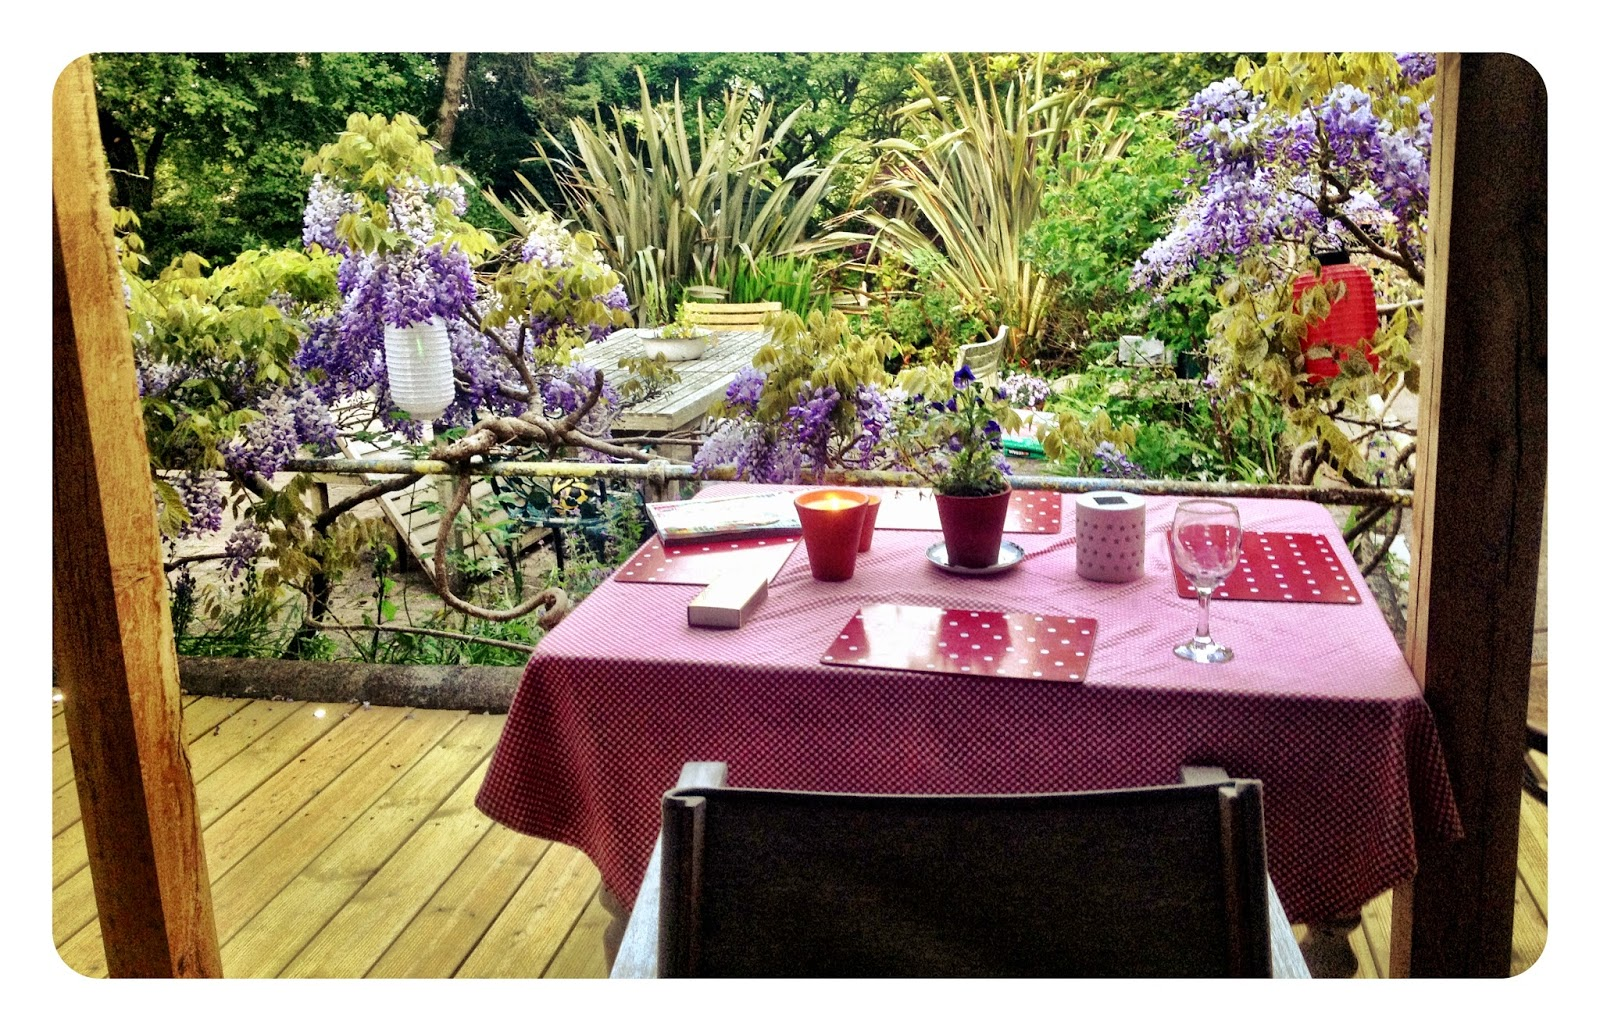 A table on a deck looking out over a garden with wisteria and sub tropical plants